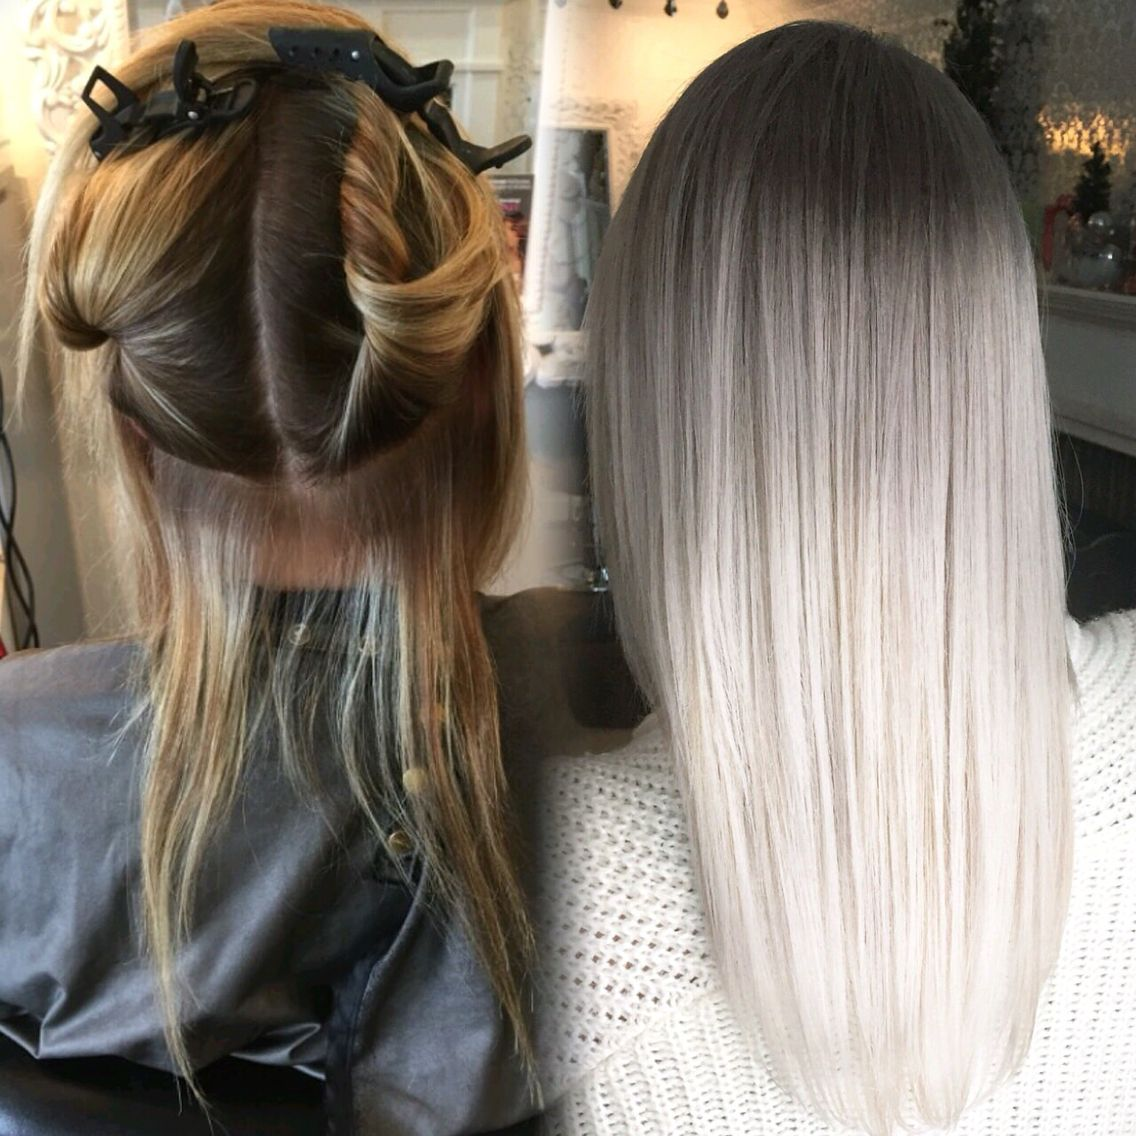 Lace Frontal Wigs For Women Gray Wigs Sexy Grey Hair Dropship Virgin Hair Companies